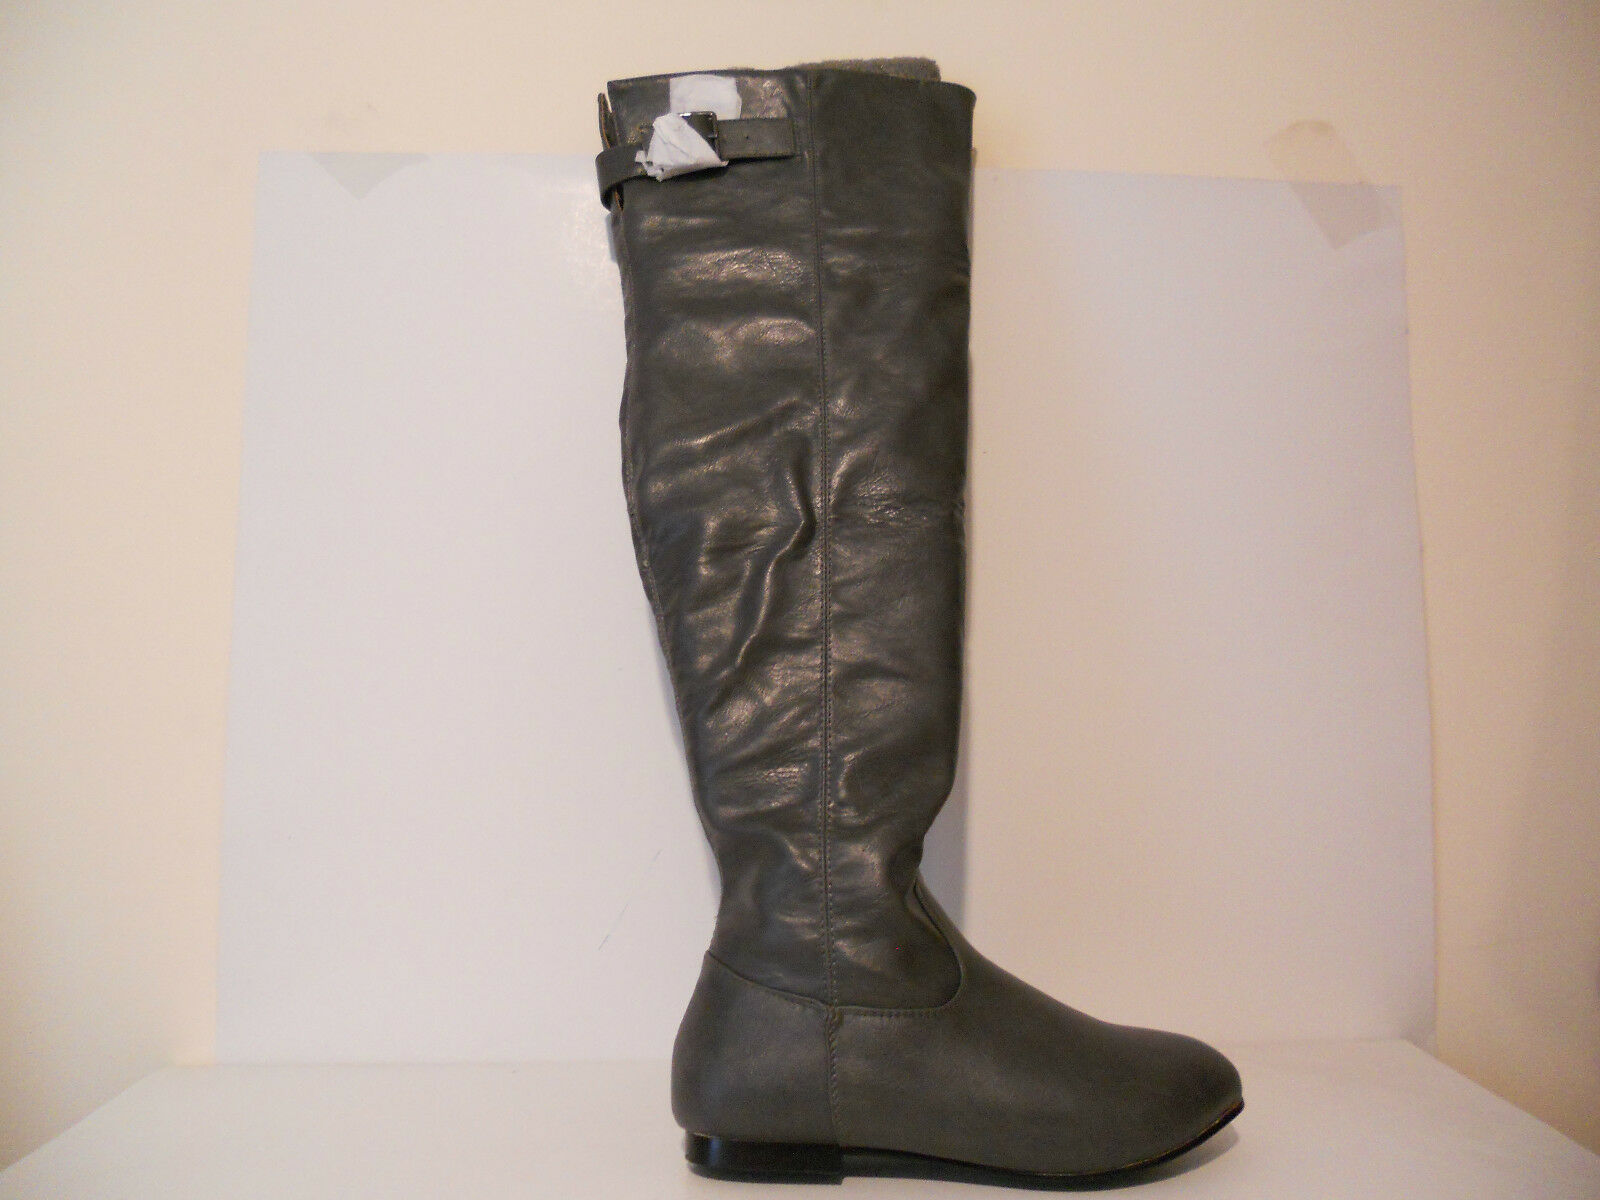 Marichi Mani Womens Roselyn-04 Western/Riding Boots Charcoal Sizes 6.5, 7, 7.5